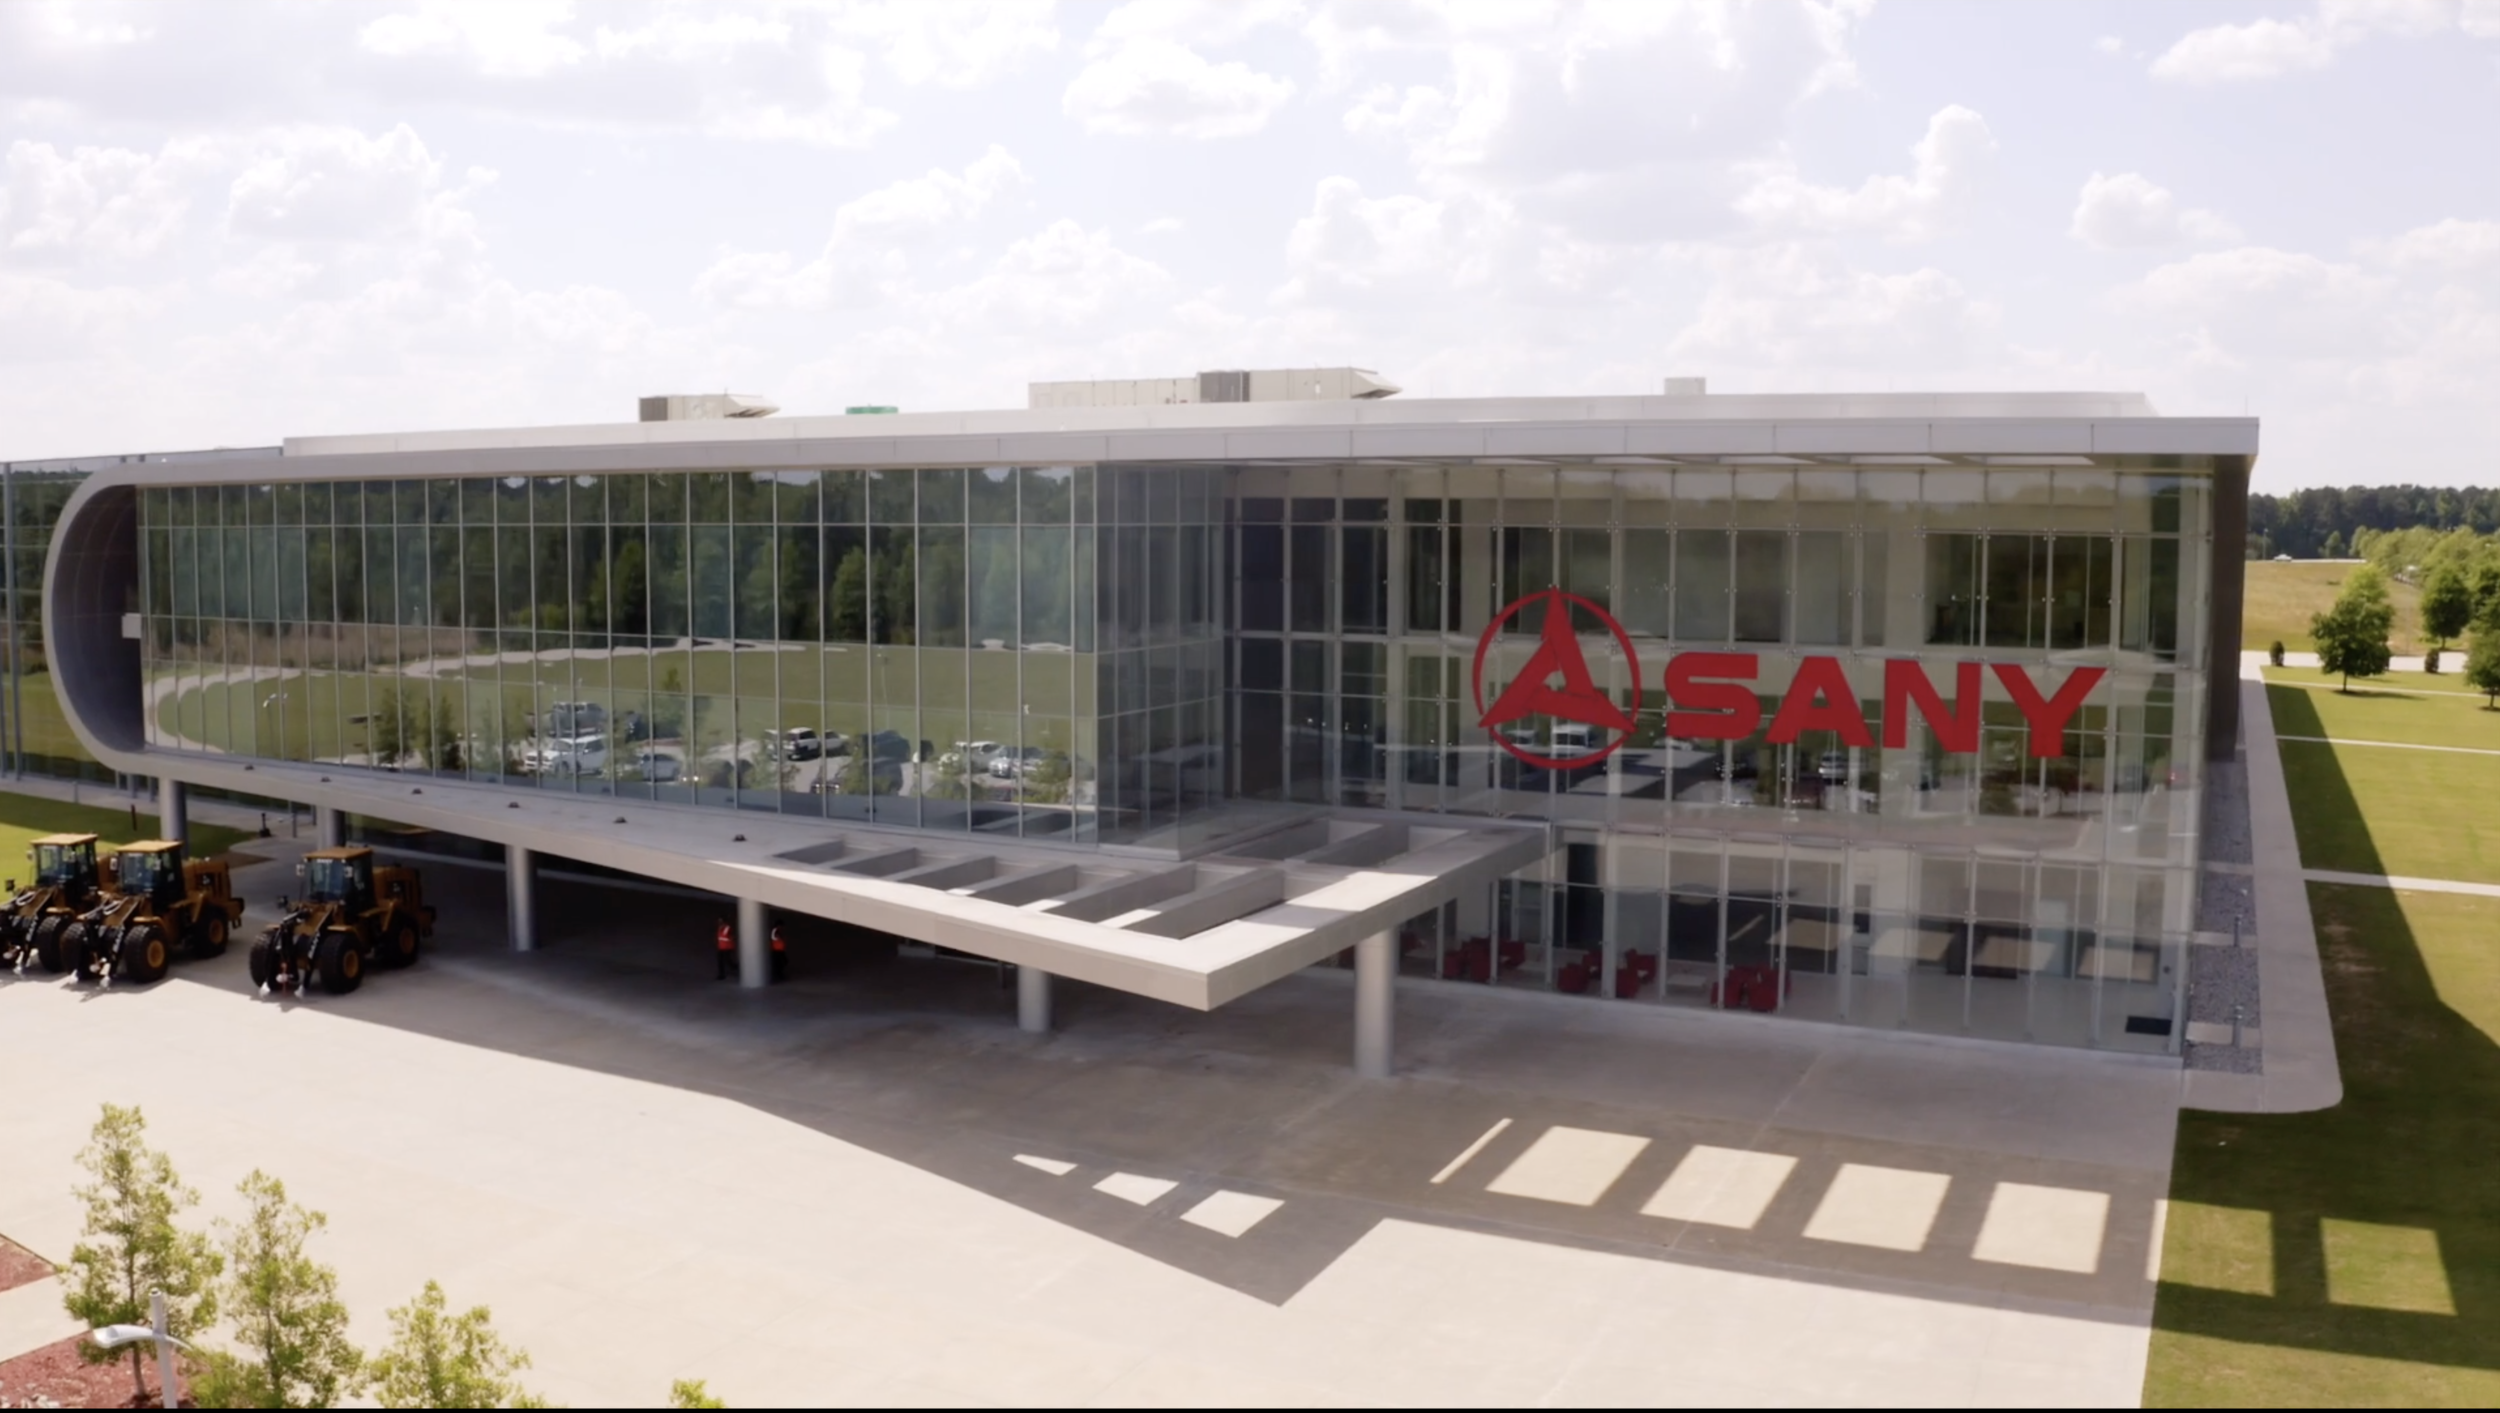 Industrial Giant, SANY, Uses Events to Create Branded Content -